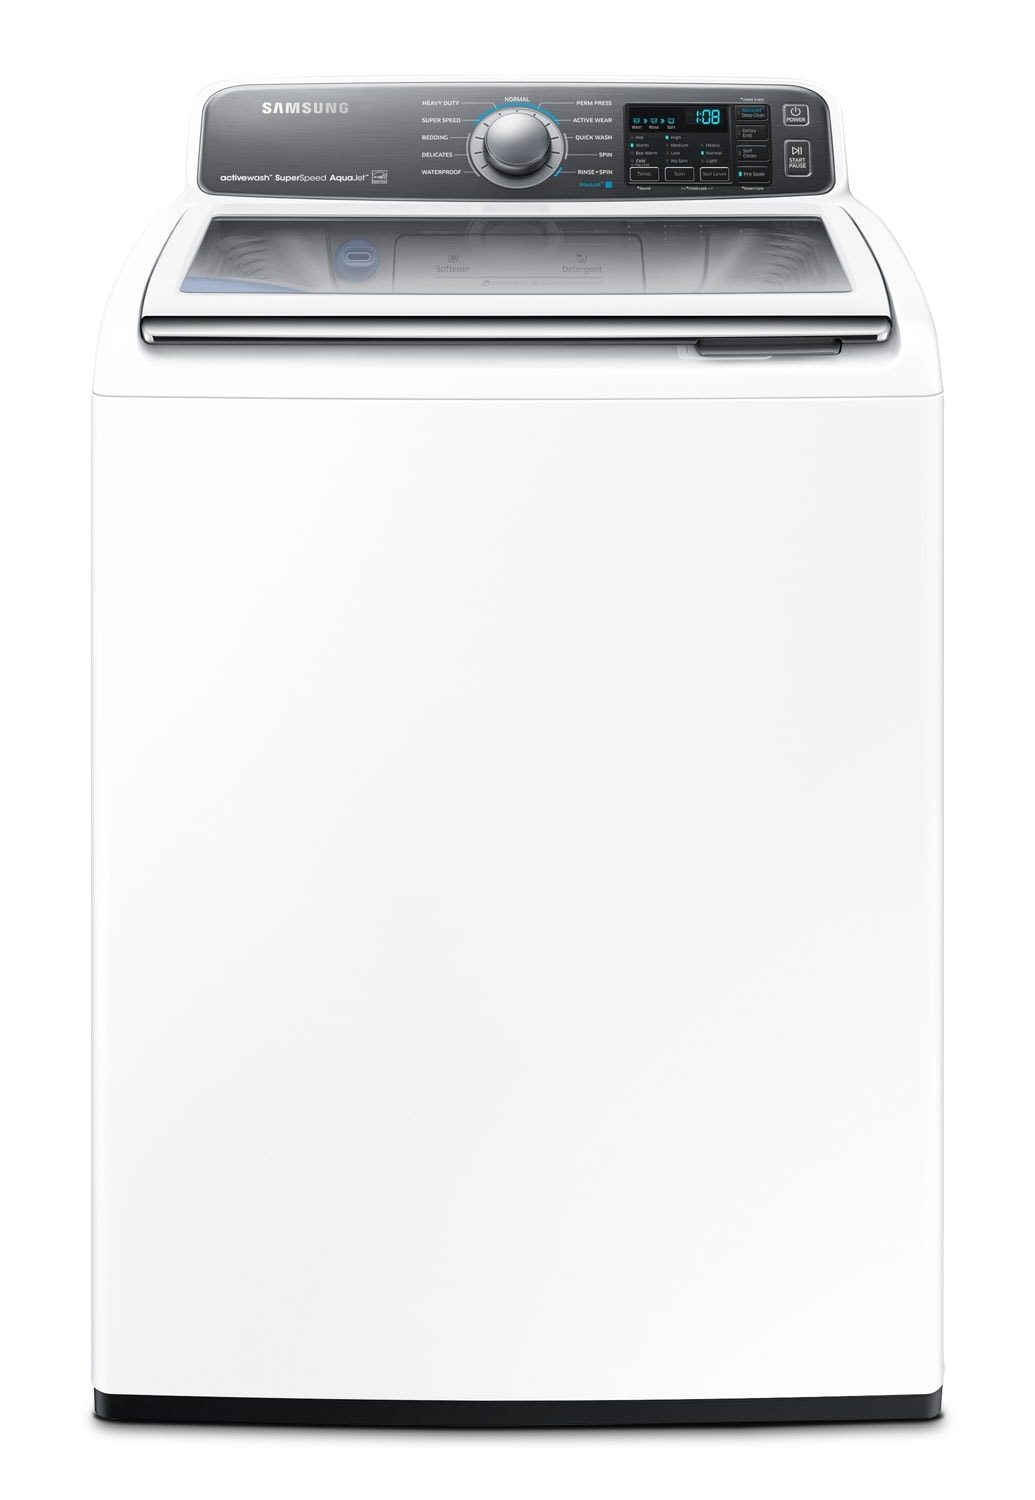 Samsung 5.5 Cu Ft. Top-Load Washer with Active Wash™ - White